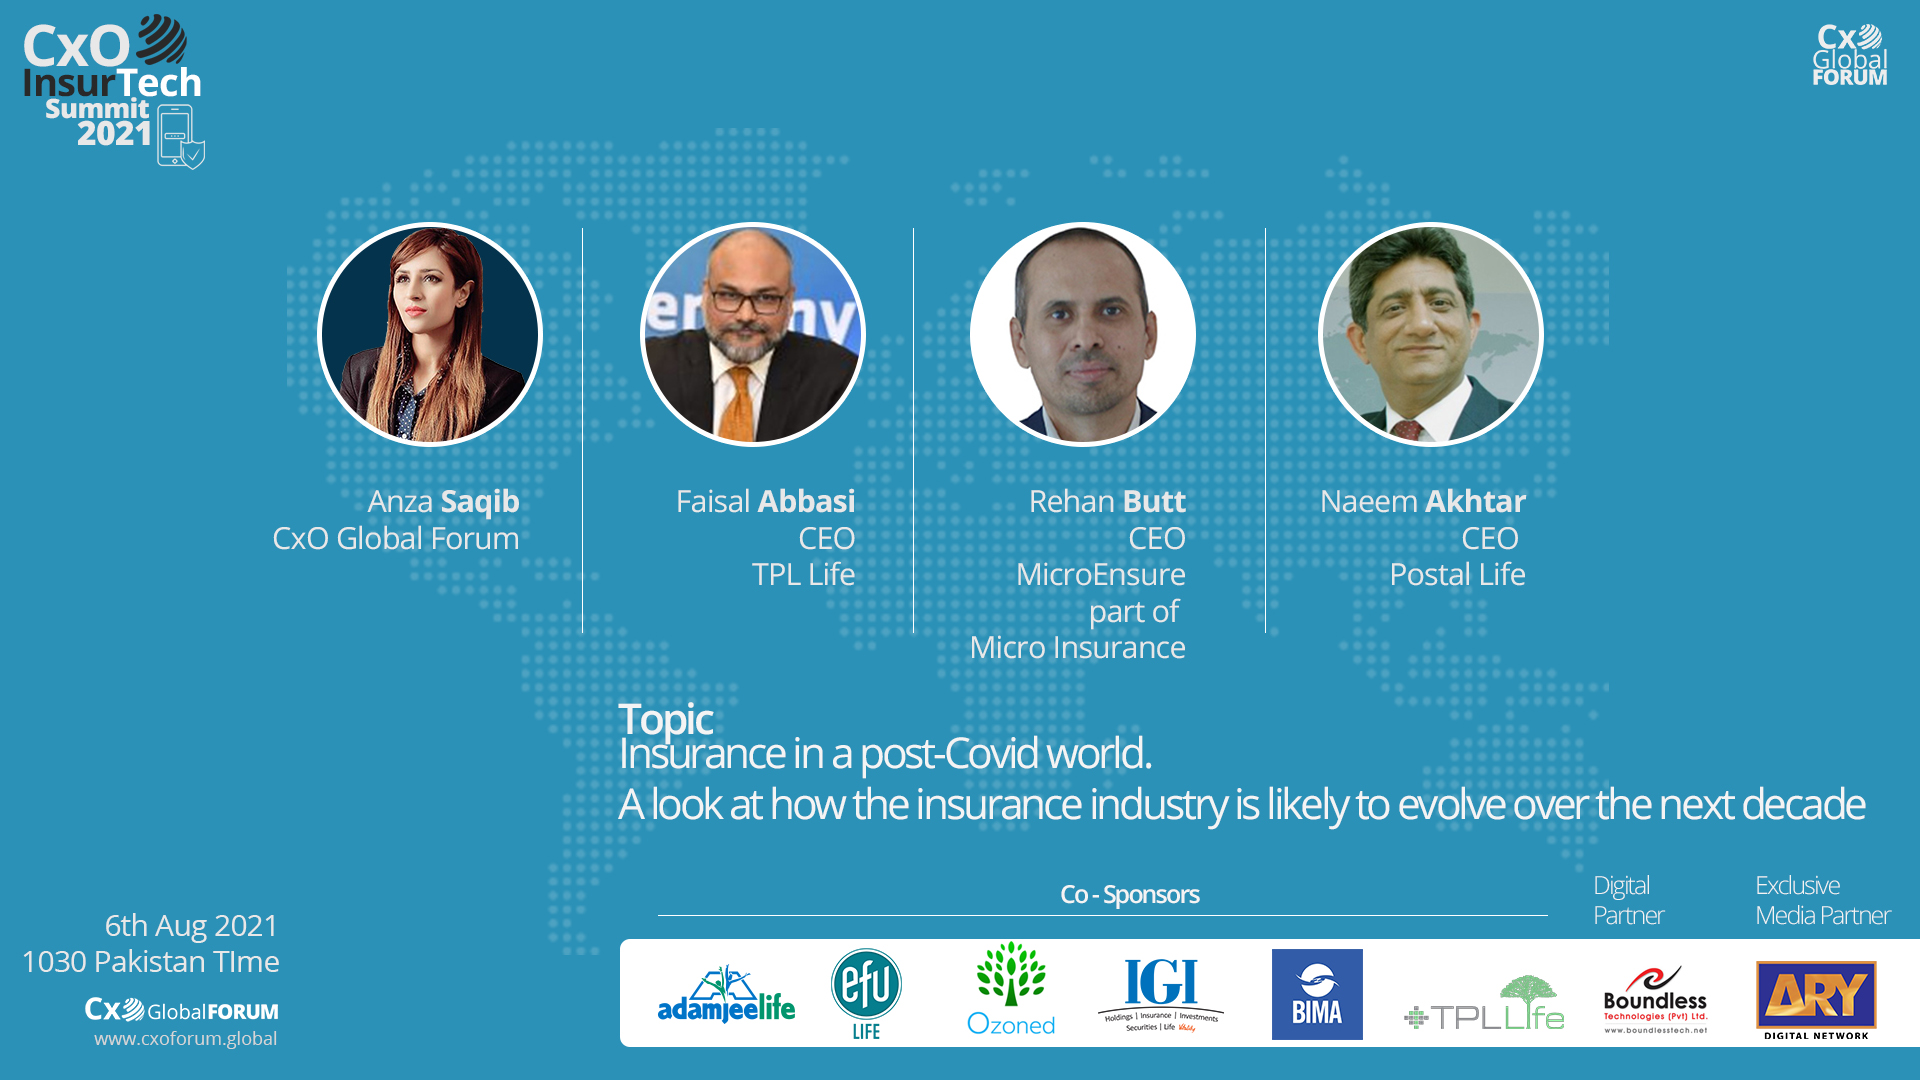 Insurance in a post-Covid world. A look at how the insurance industry is likely to evolve over the next decade